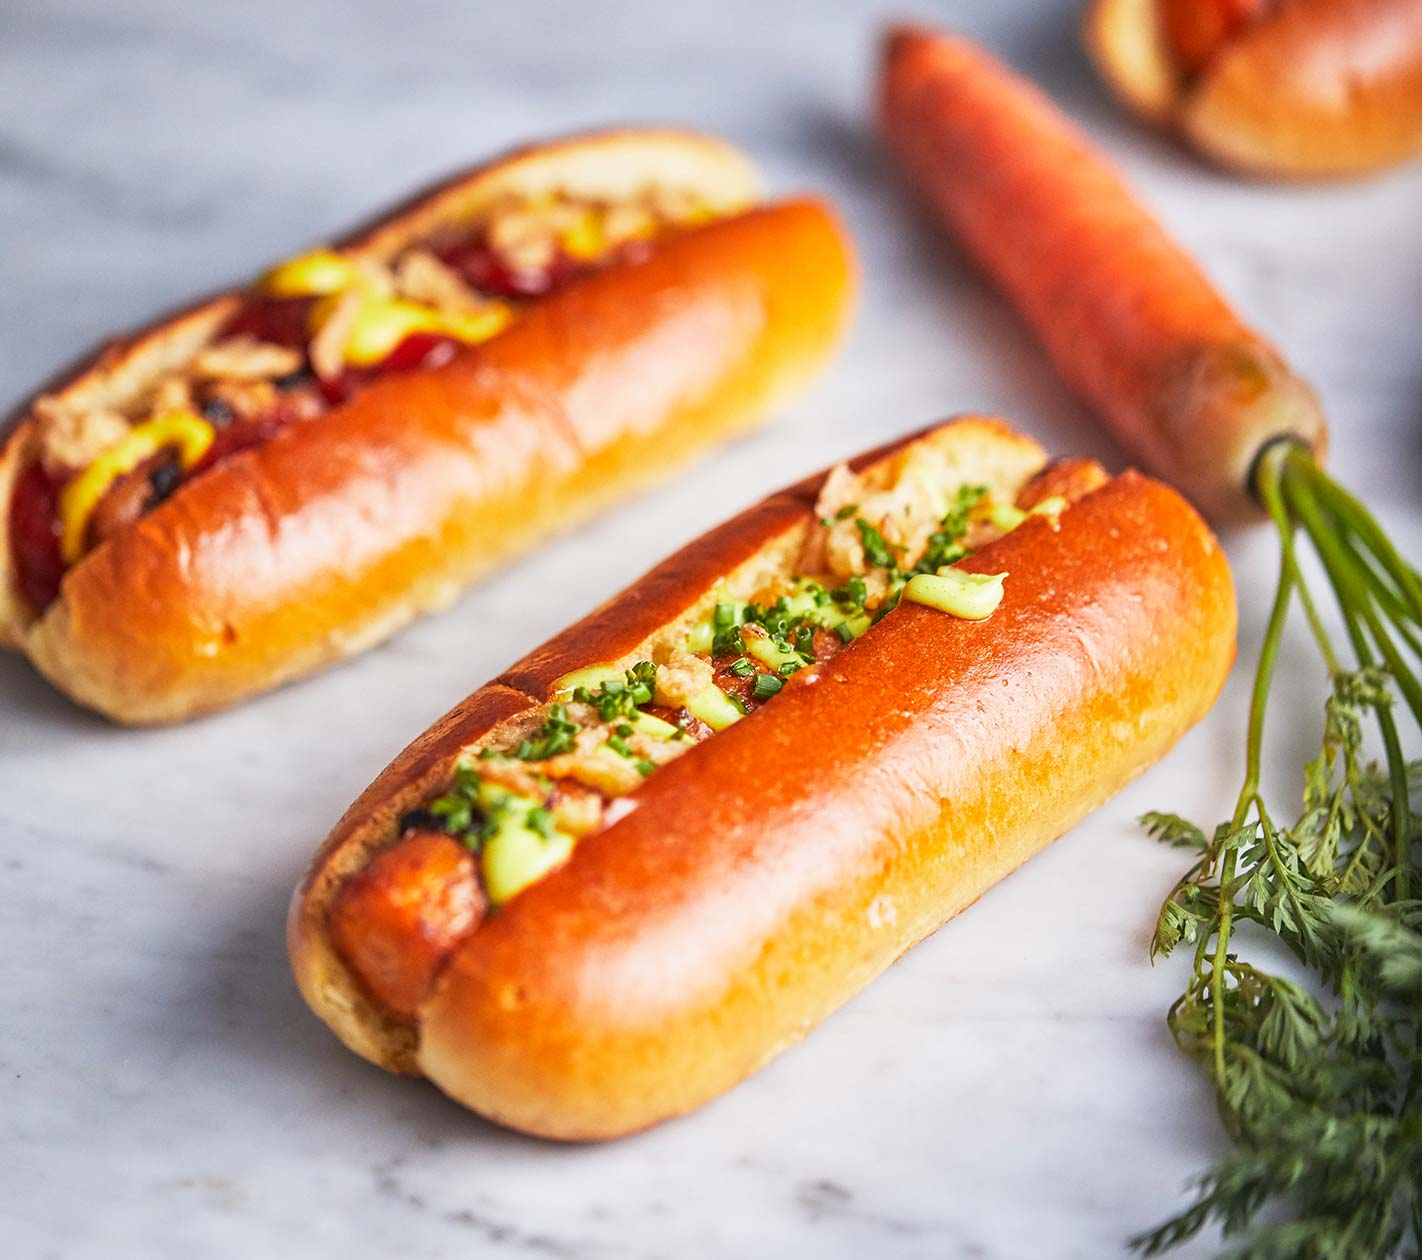 Carrot hot dogs are a vegetarian summer treat